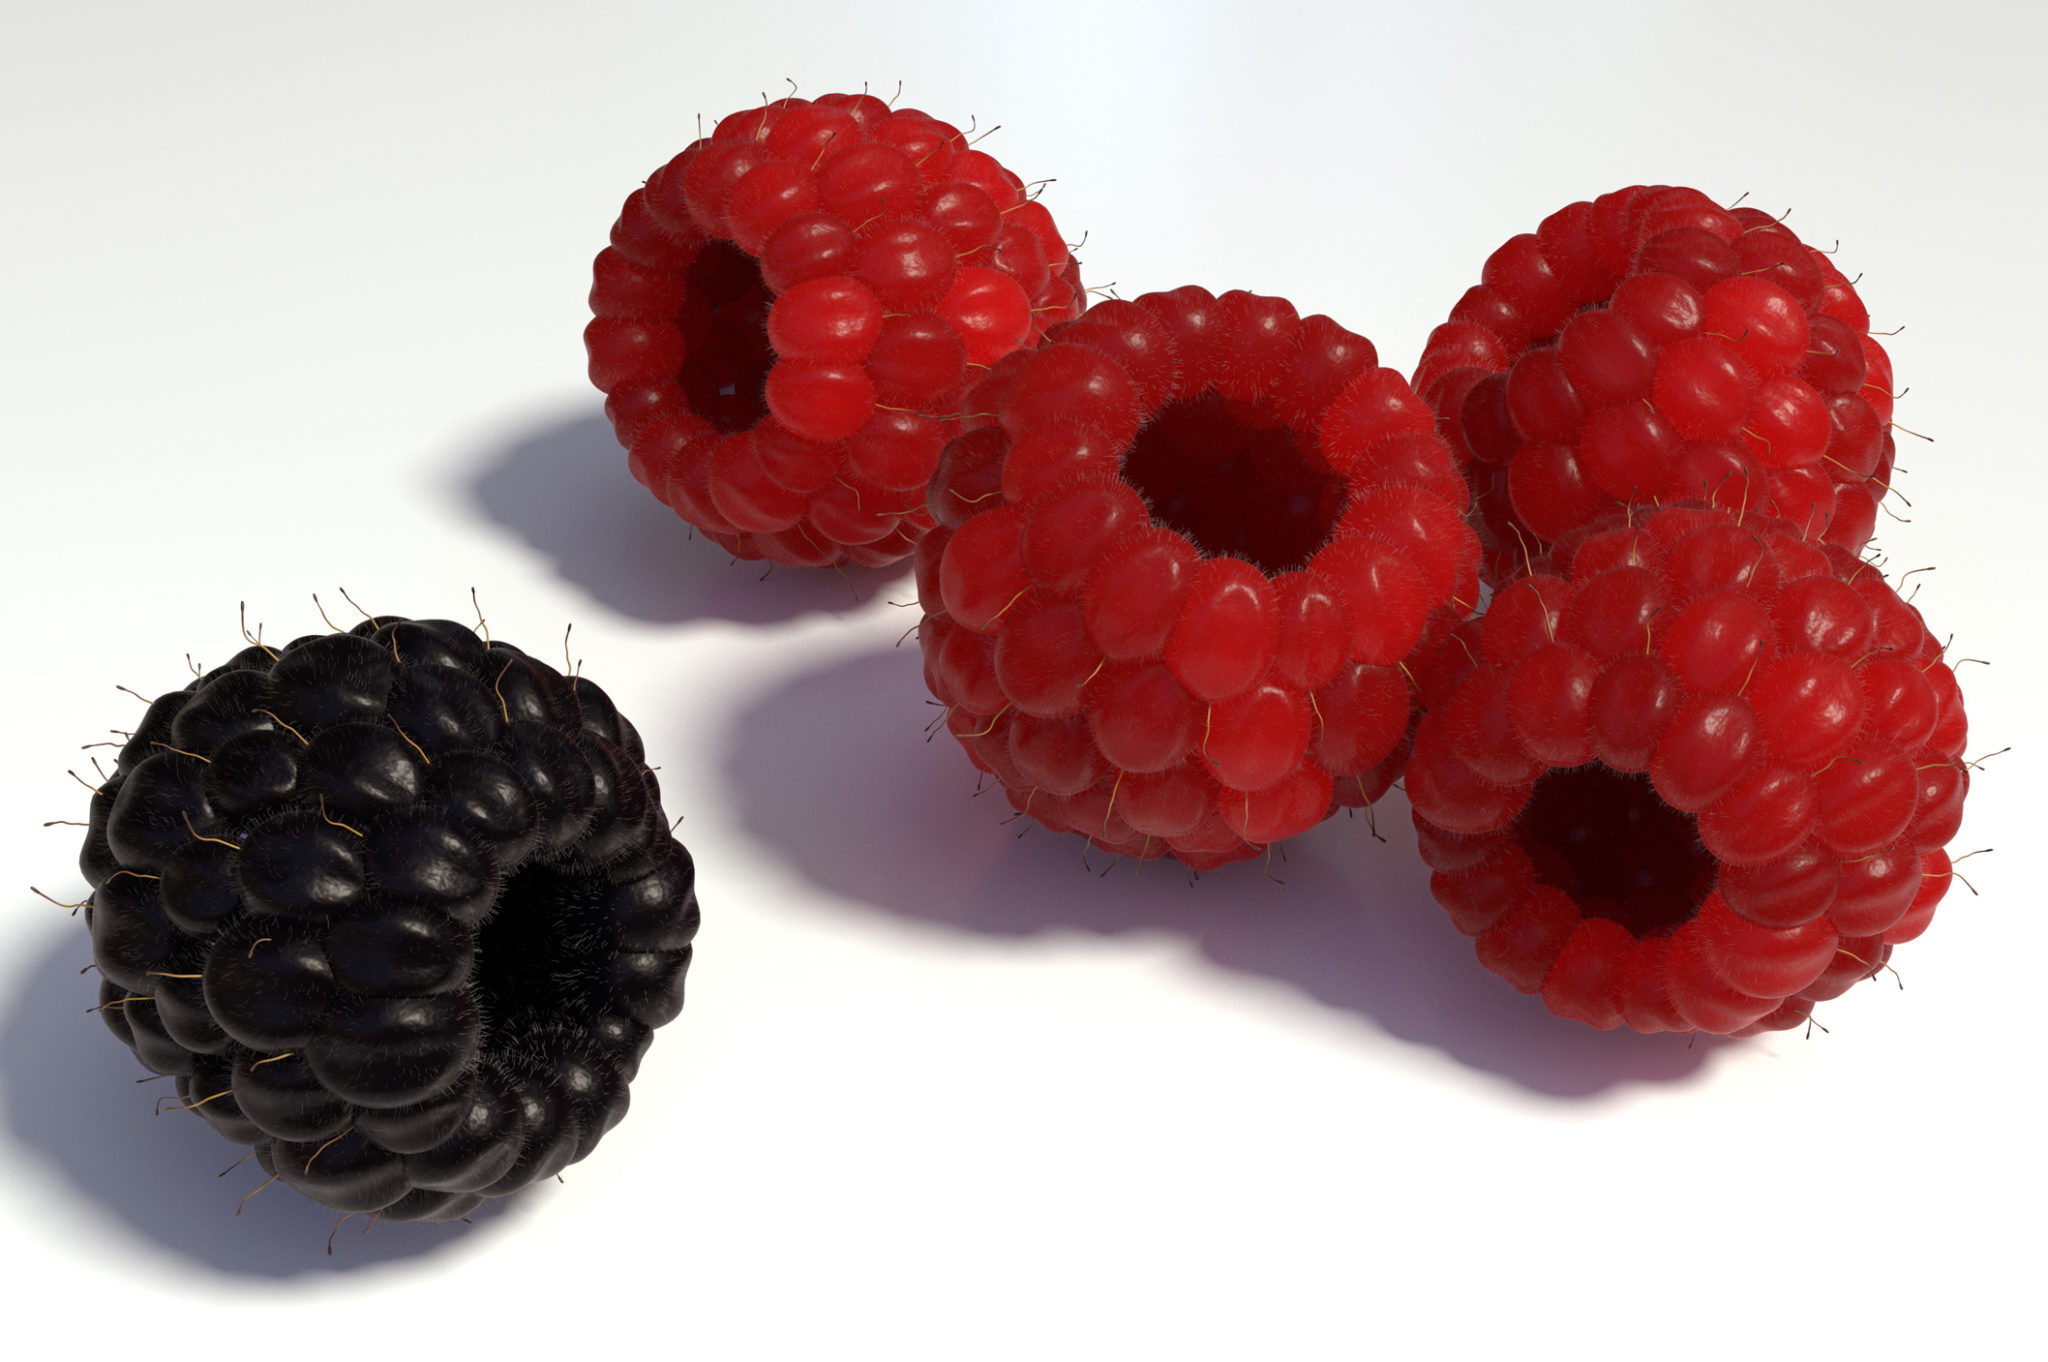 Five raspberries—four red, one black.